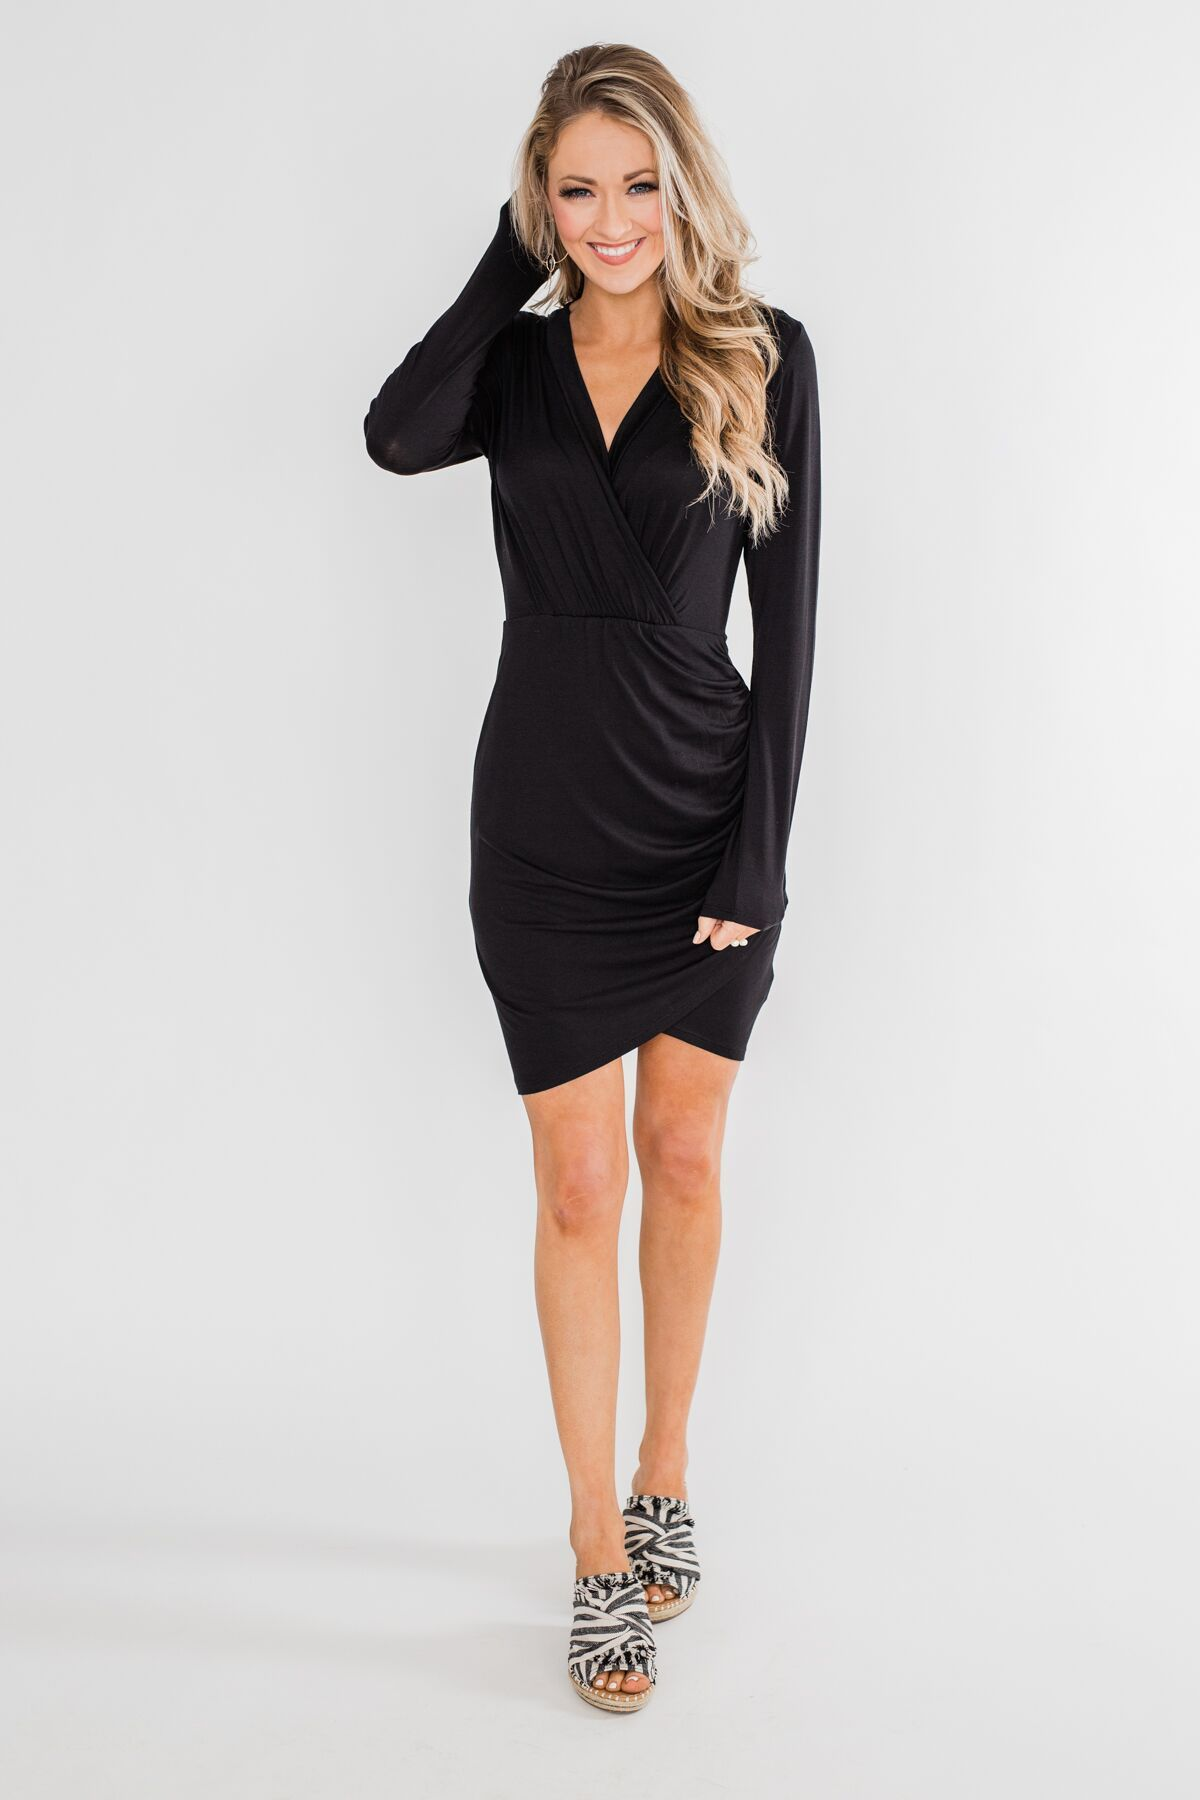 ae07816b154f Truly Elegant Long Sleeve Fitted Dress Outfit – The Pulse Boutique